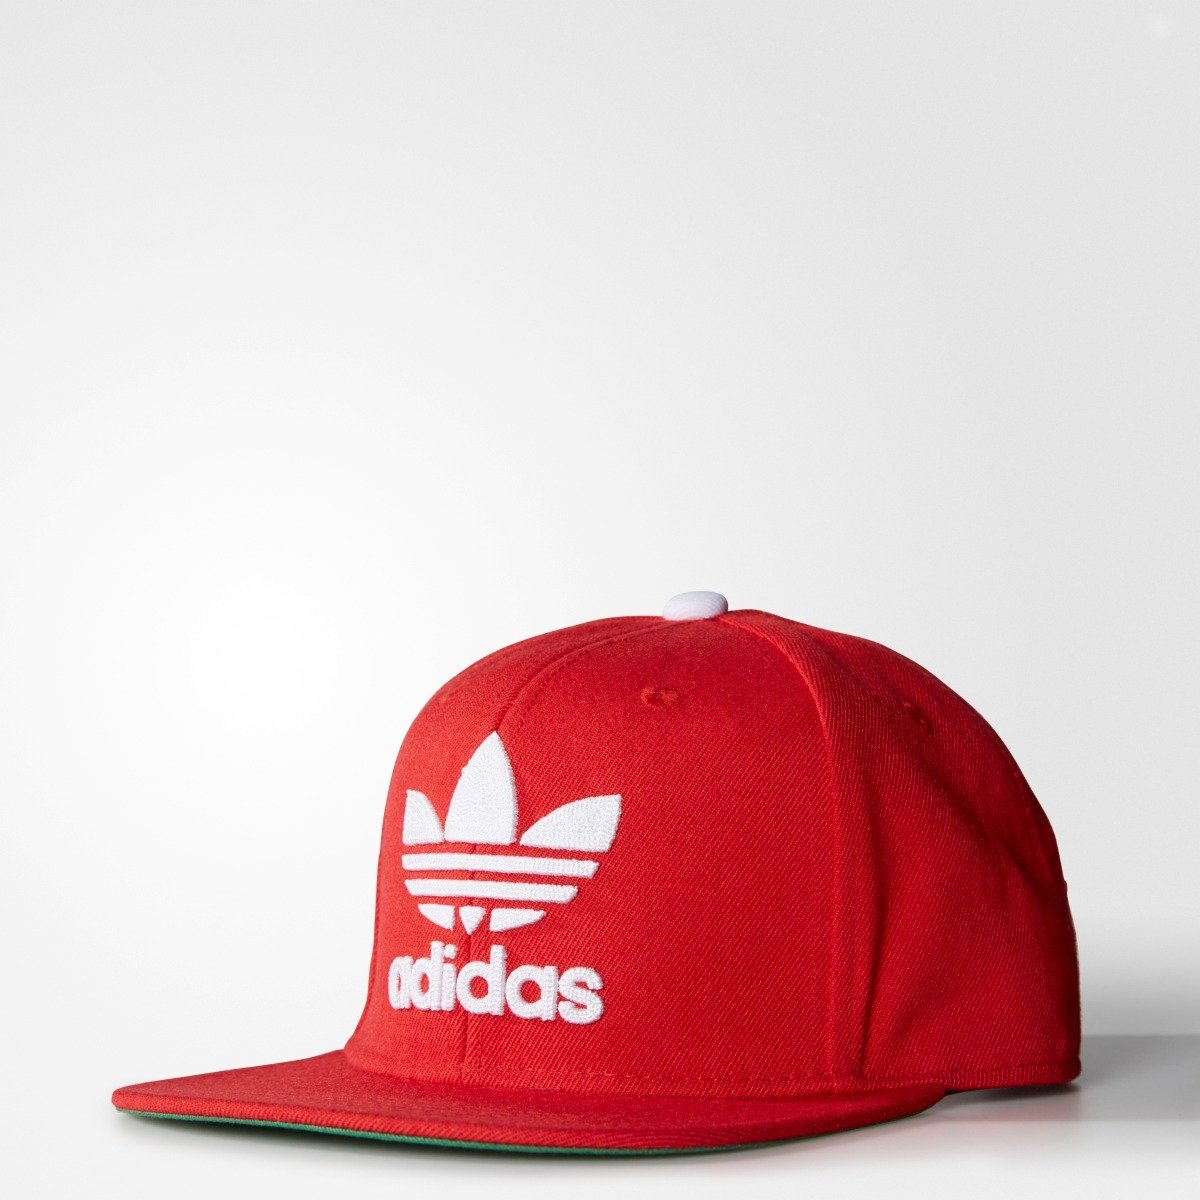 503bf7c4a57 Men s Adidas Originals Trefoil Chain Snapback Hat Scarlet Red S48636 ...